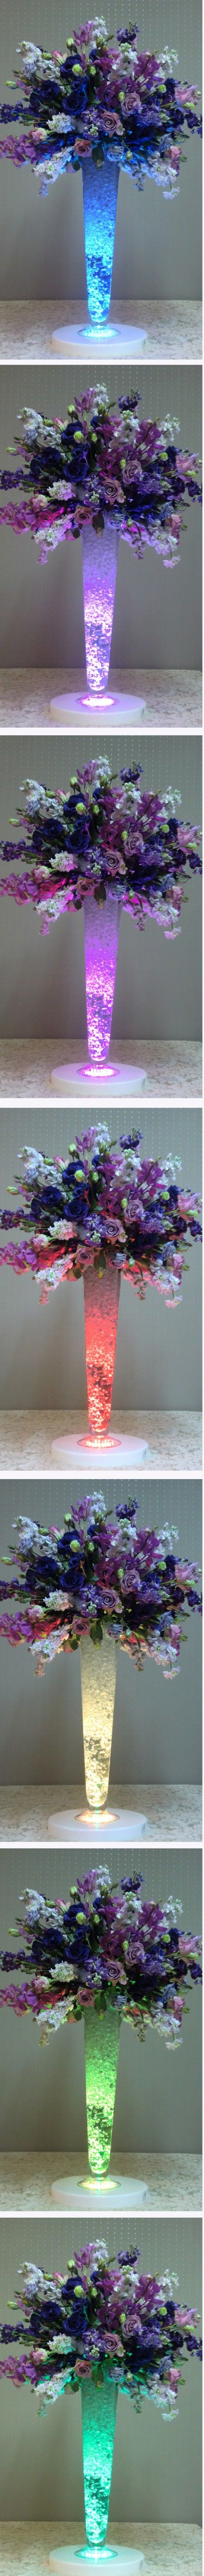 Slow color changing LED submersible lights are THE BEST when it comes to DIY table centerpieces & party decor. It's crazy easy adding these to your floral arrangements - take note, wedding planners: http://www.flashingblinkylights.com/multicolor-submersible-led-lights-for-special-events-sku-nol-11446-mlt.html